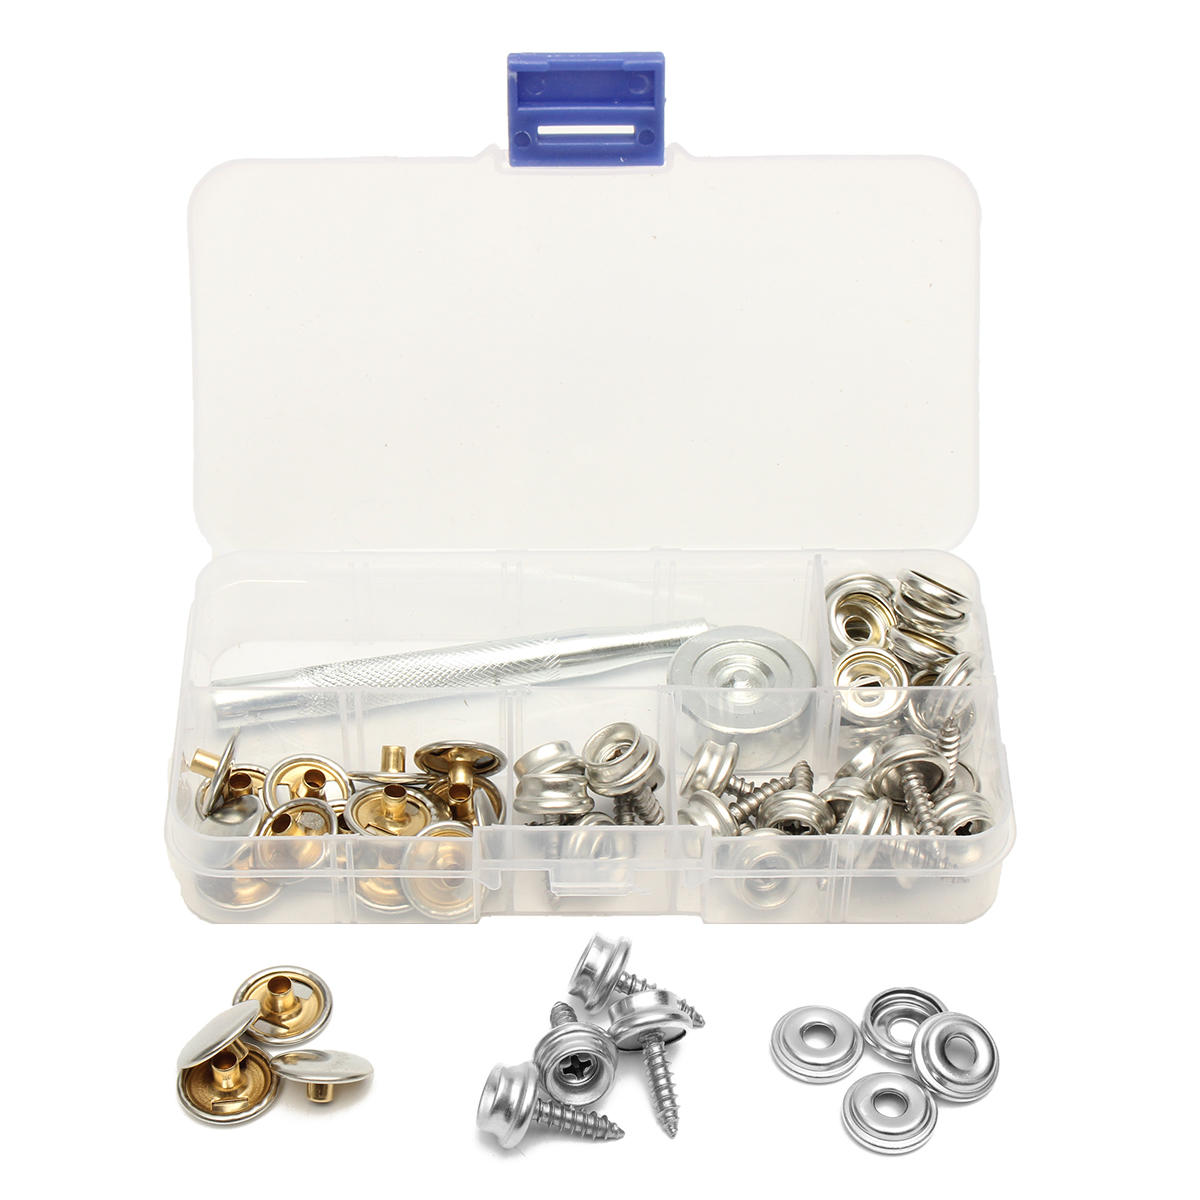 62Pcs Stainless Steel Press Studs Screw Bases Snap Fasteners Kit for Leather